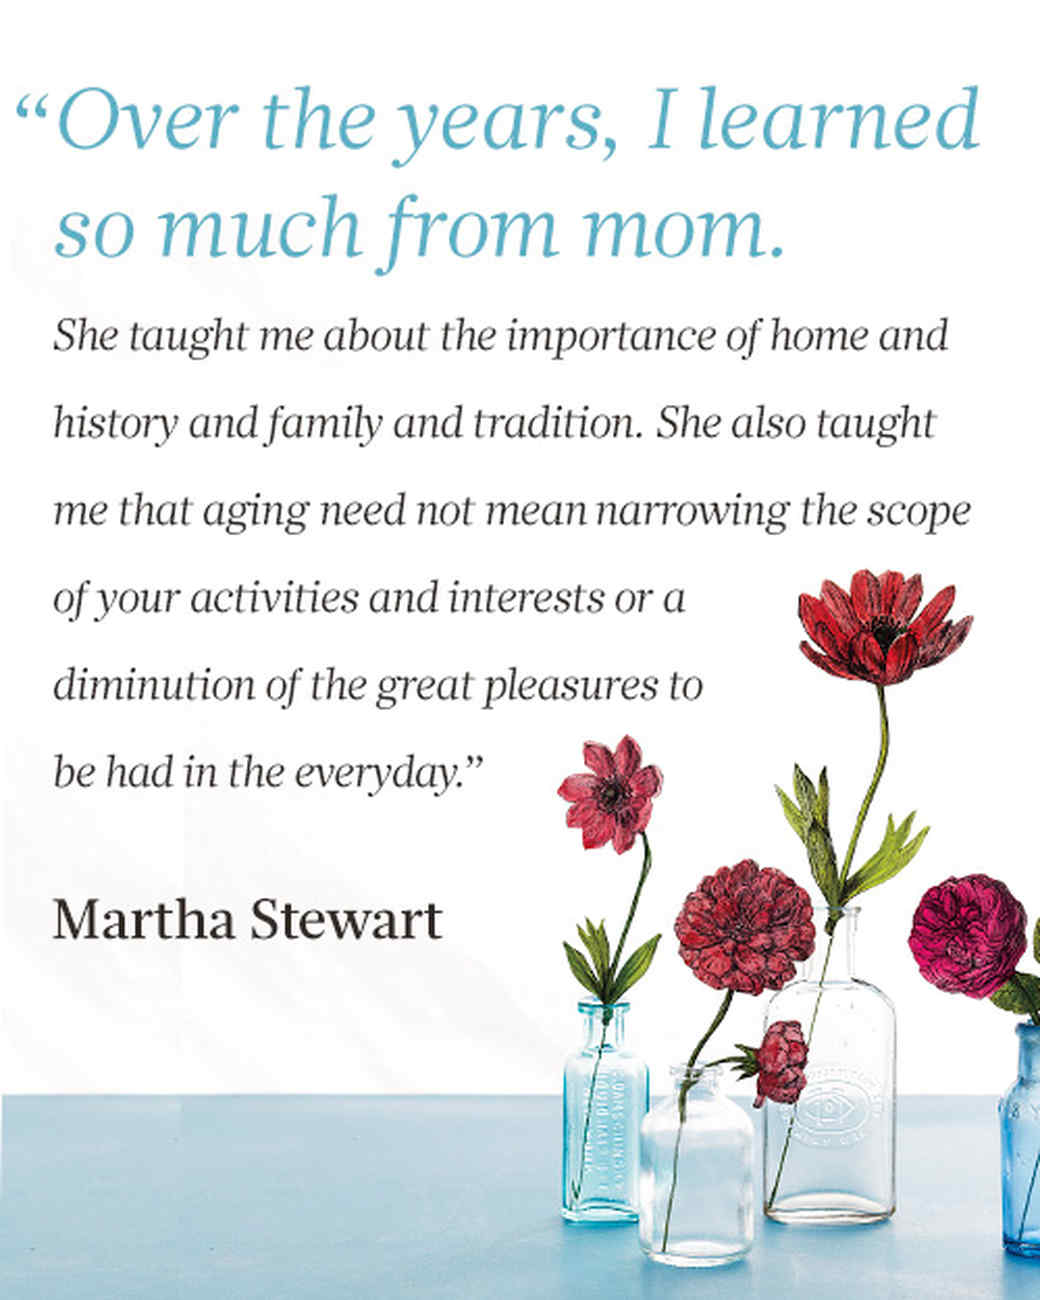 Mothers Day Quotes: Beautiful Words To Share With Your Favorite Mom Ma.